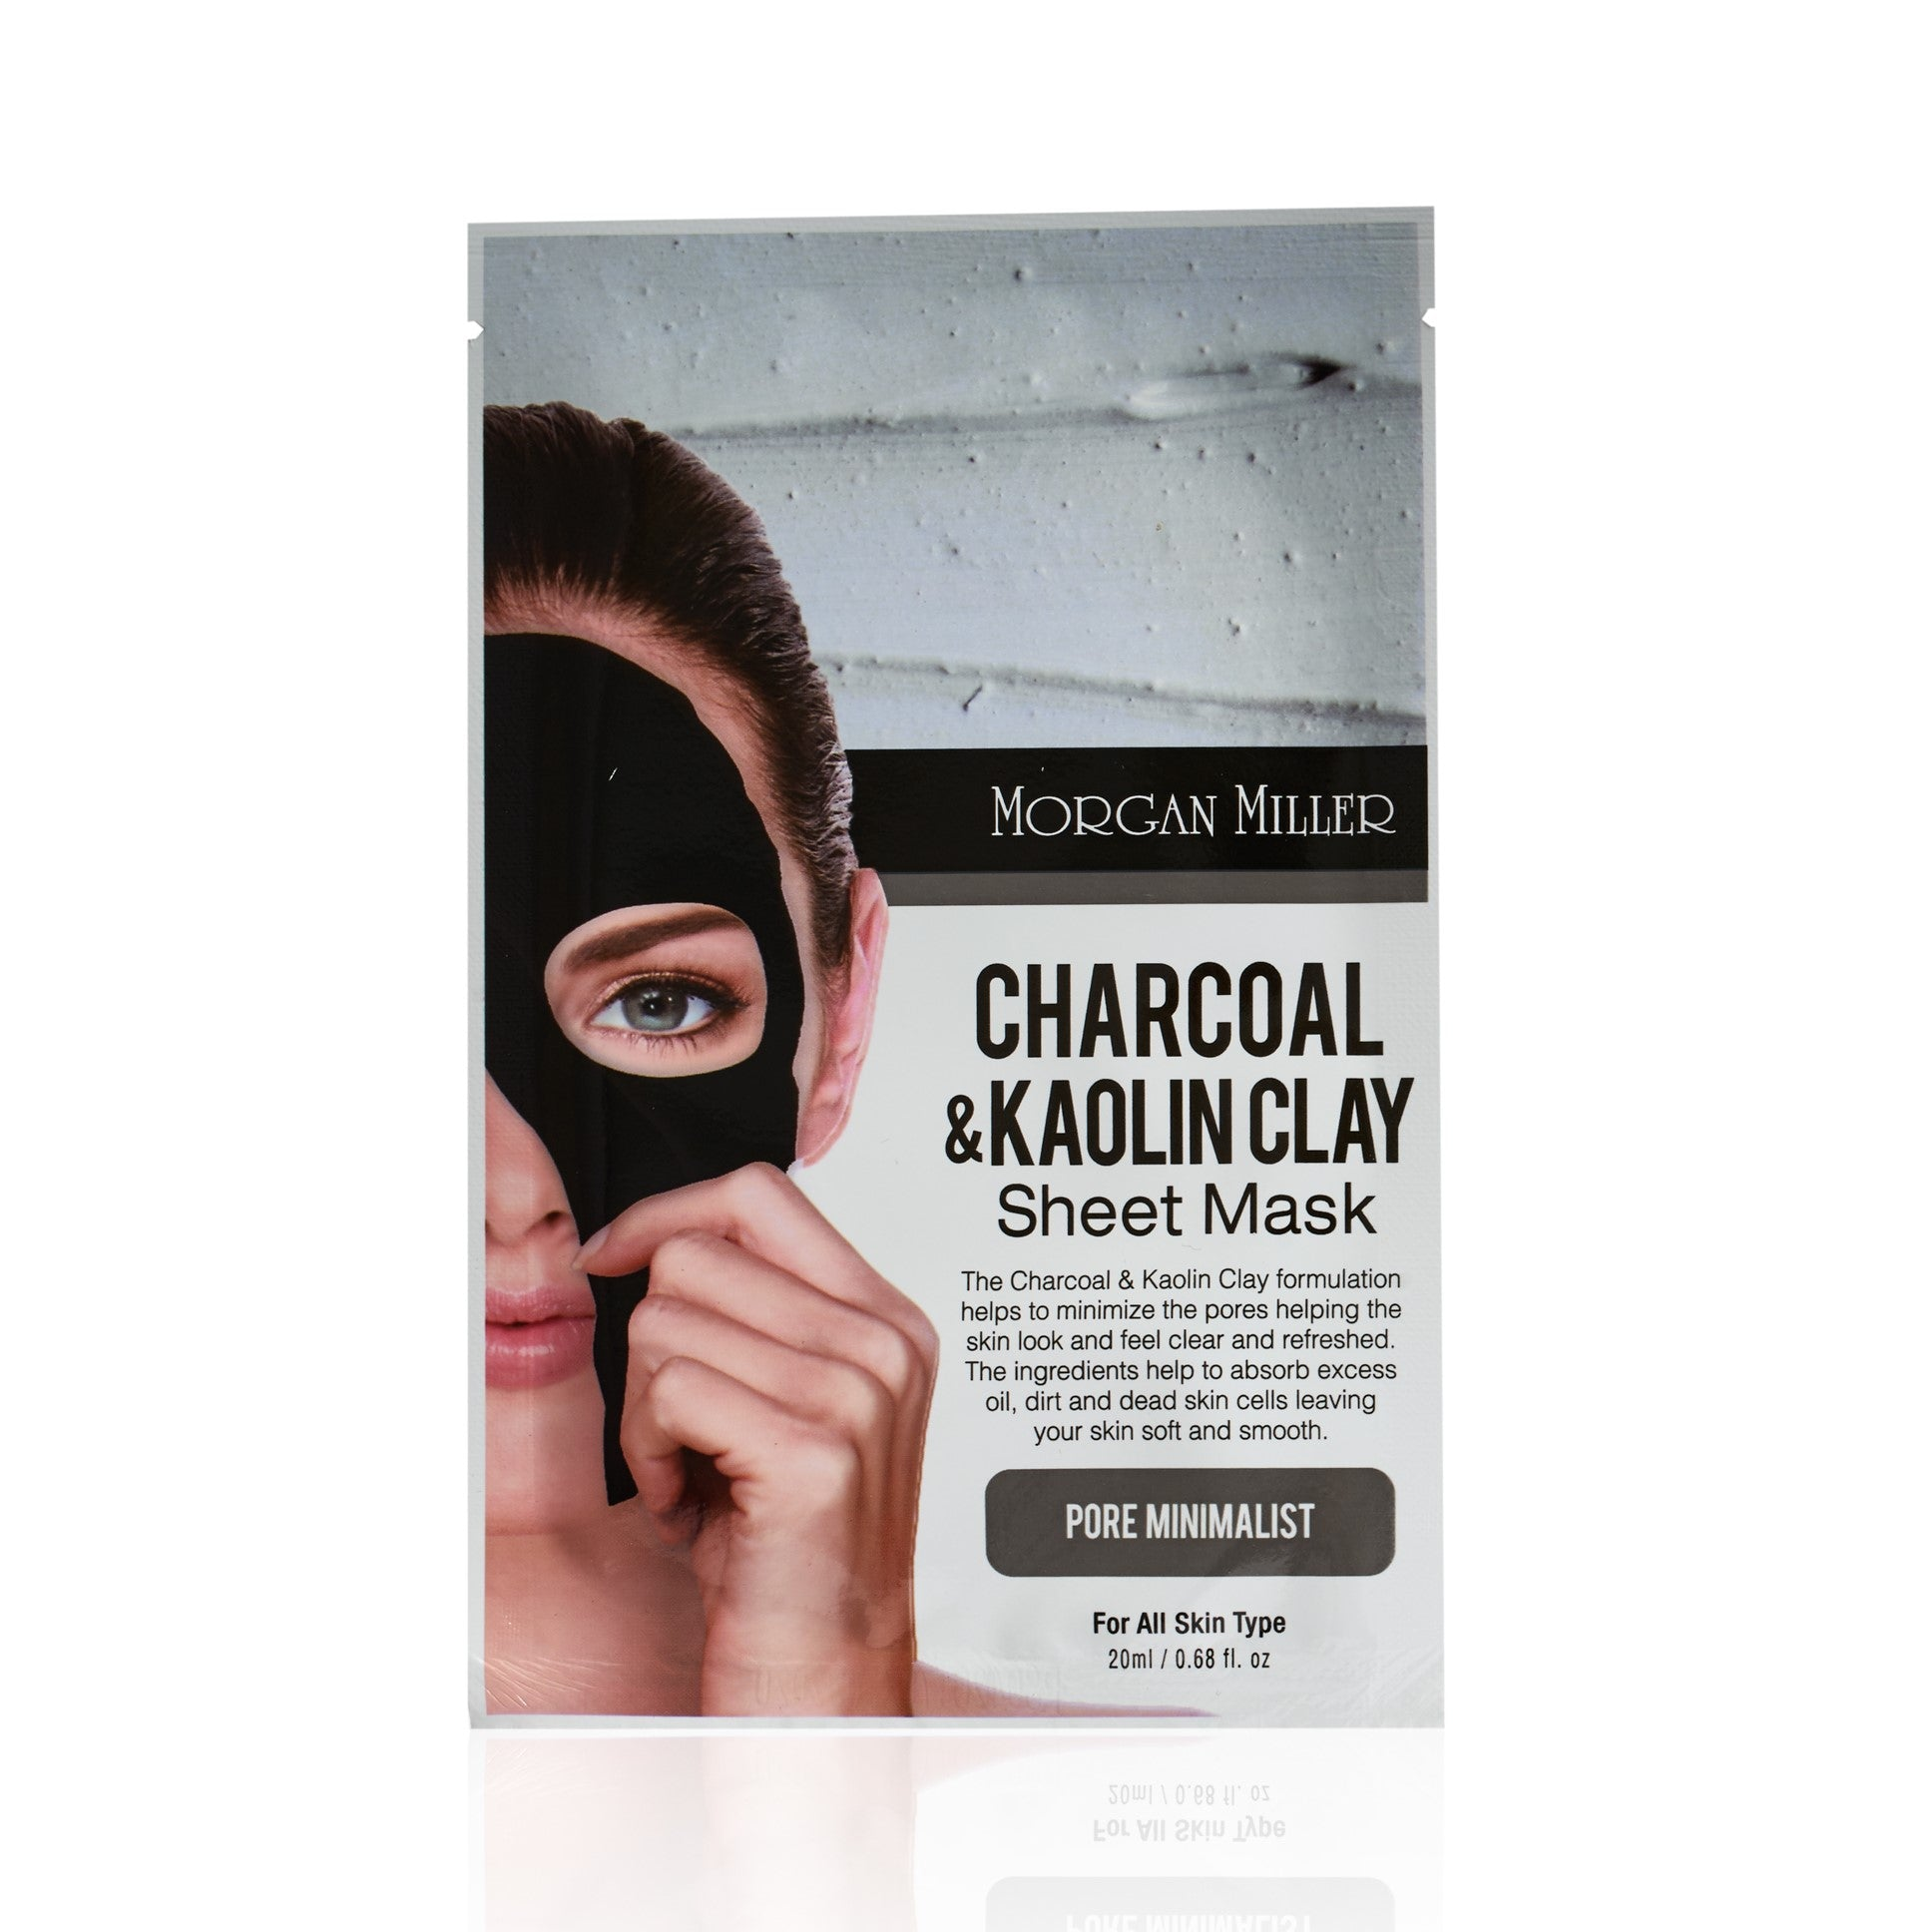 Morgan Miller Charcoal & Kaolin Clay Sheet Mask